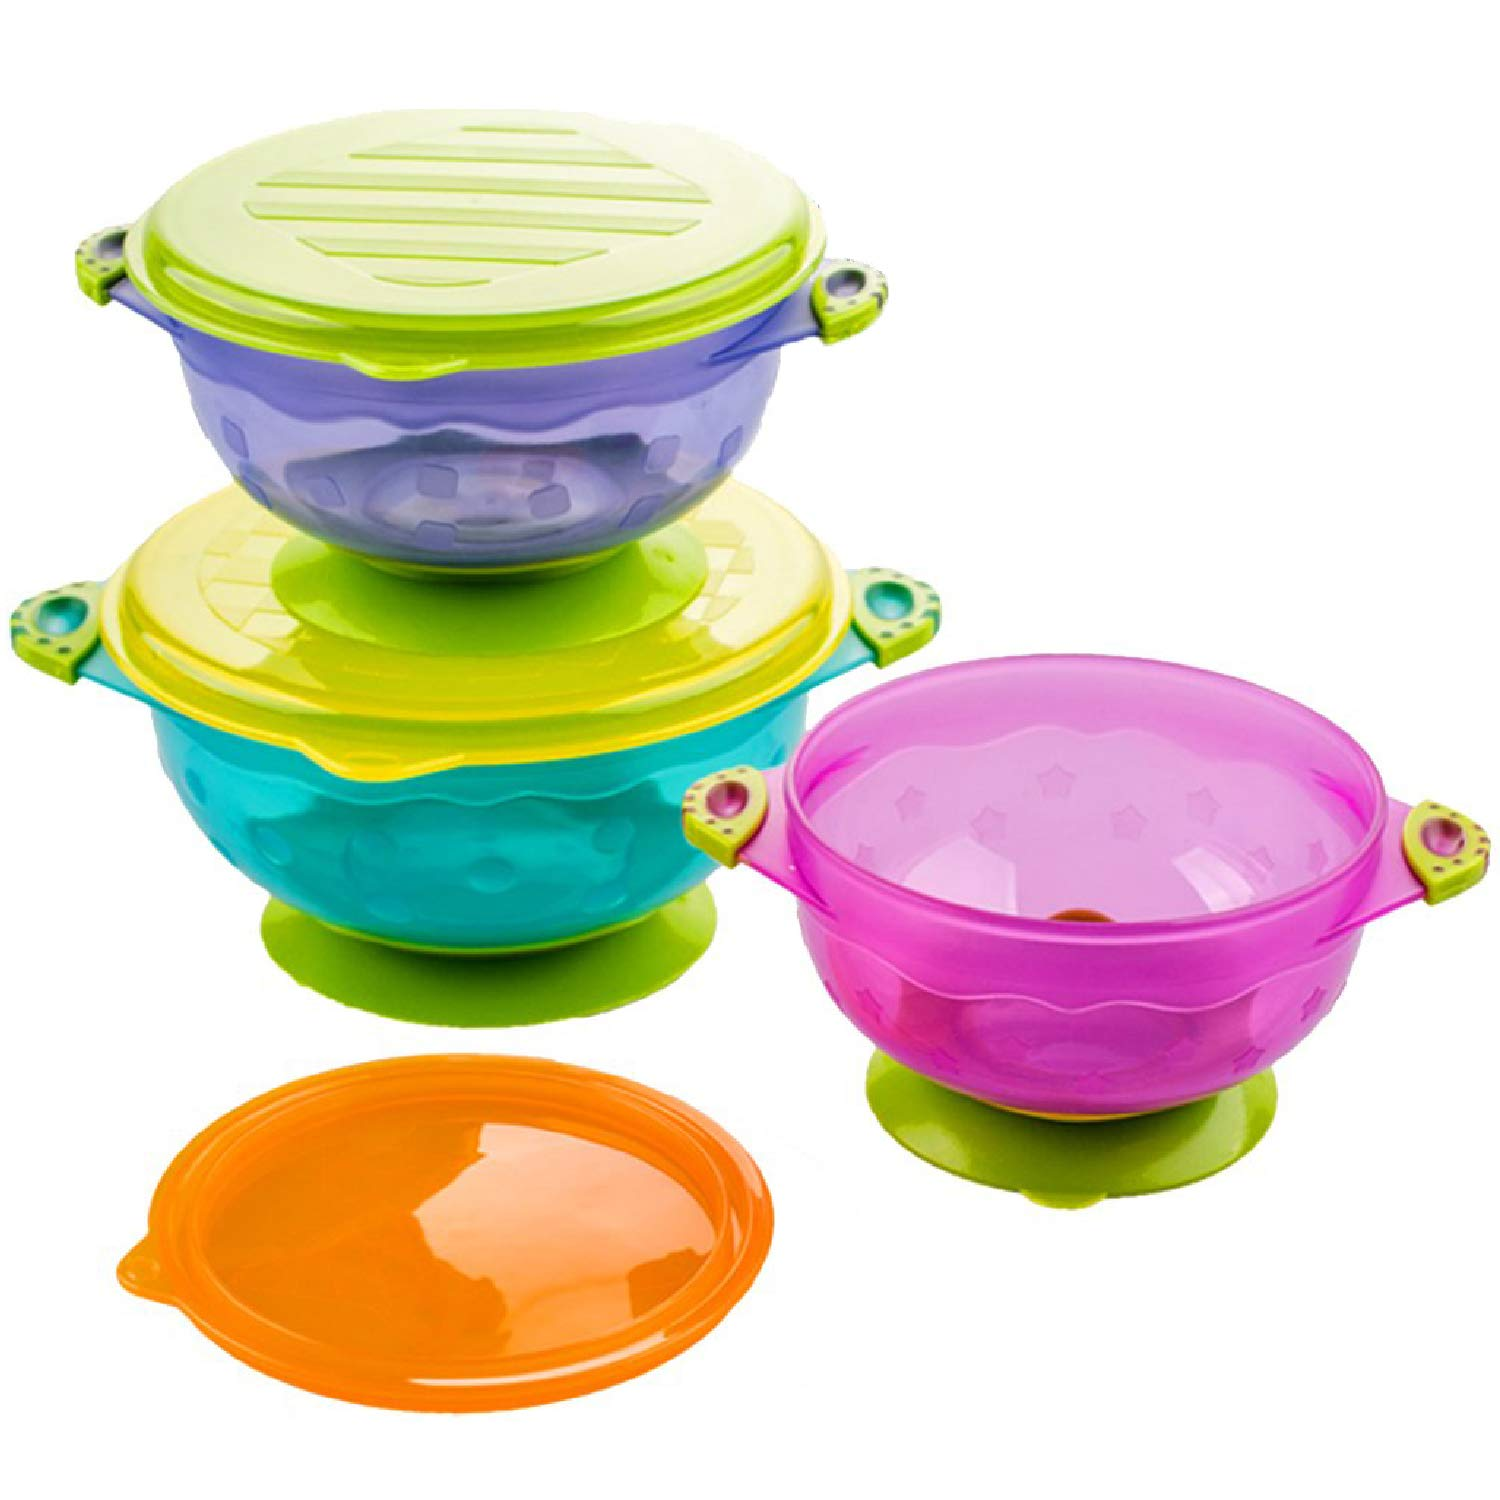 Silikong Suction National uniform free shipping Bowls for Toddlers Special Campaign BPA Dishwasher Mi and Free